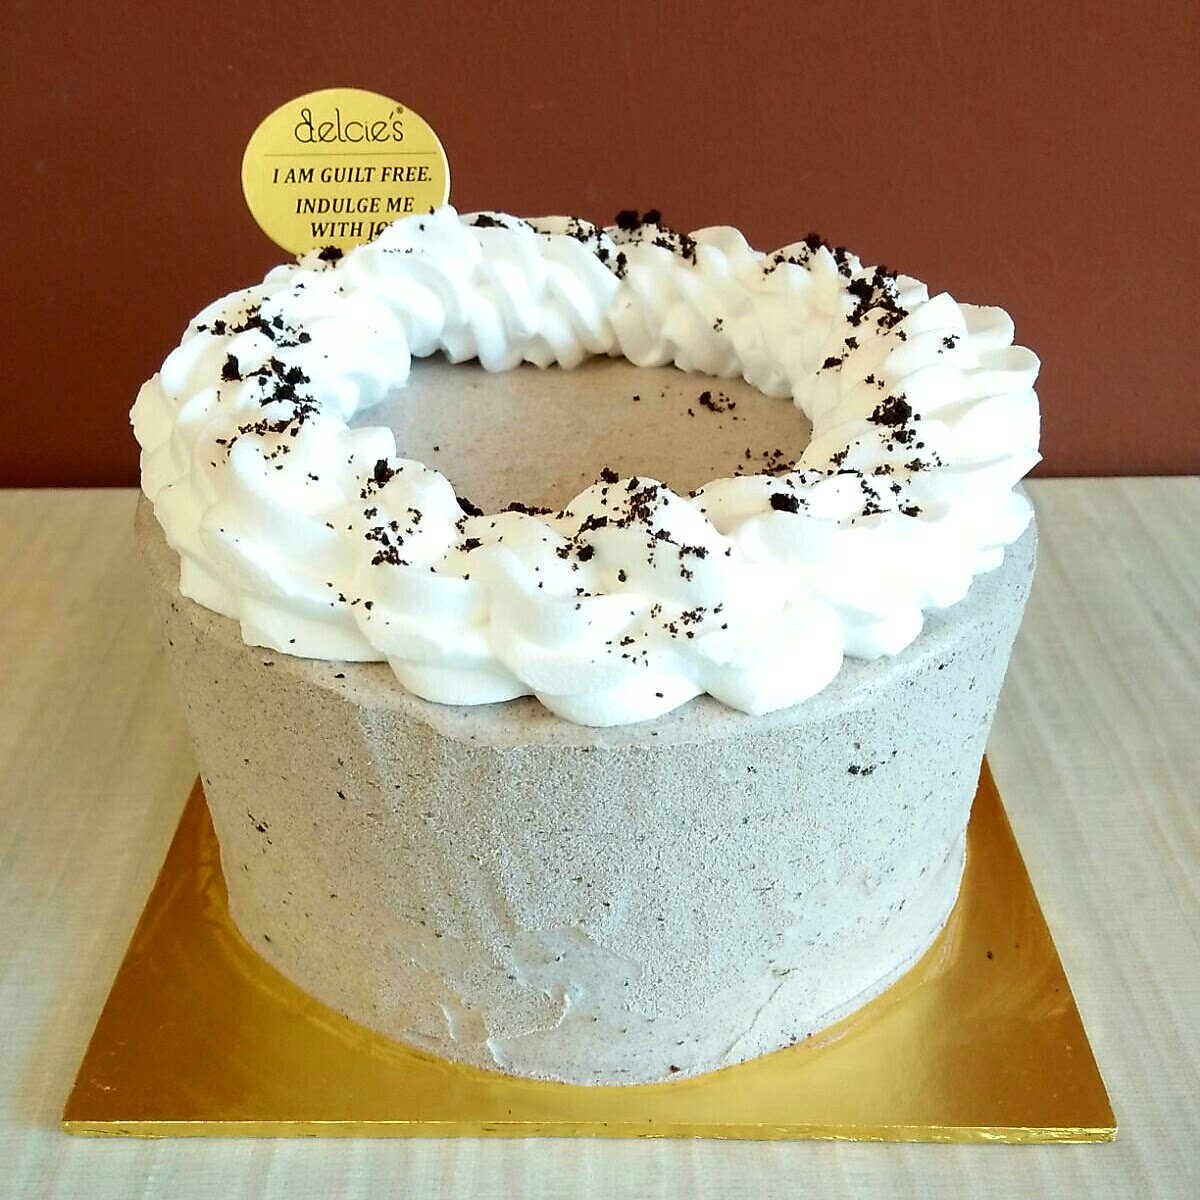 Delcies Desserts And Cakes